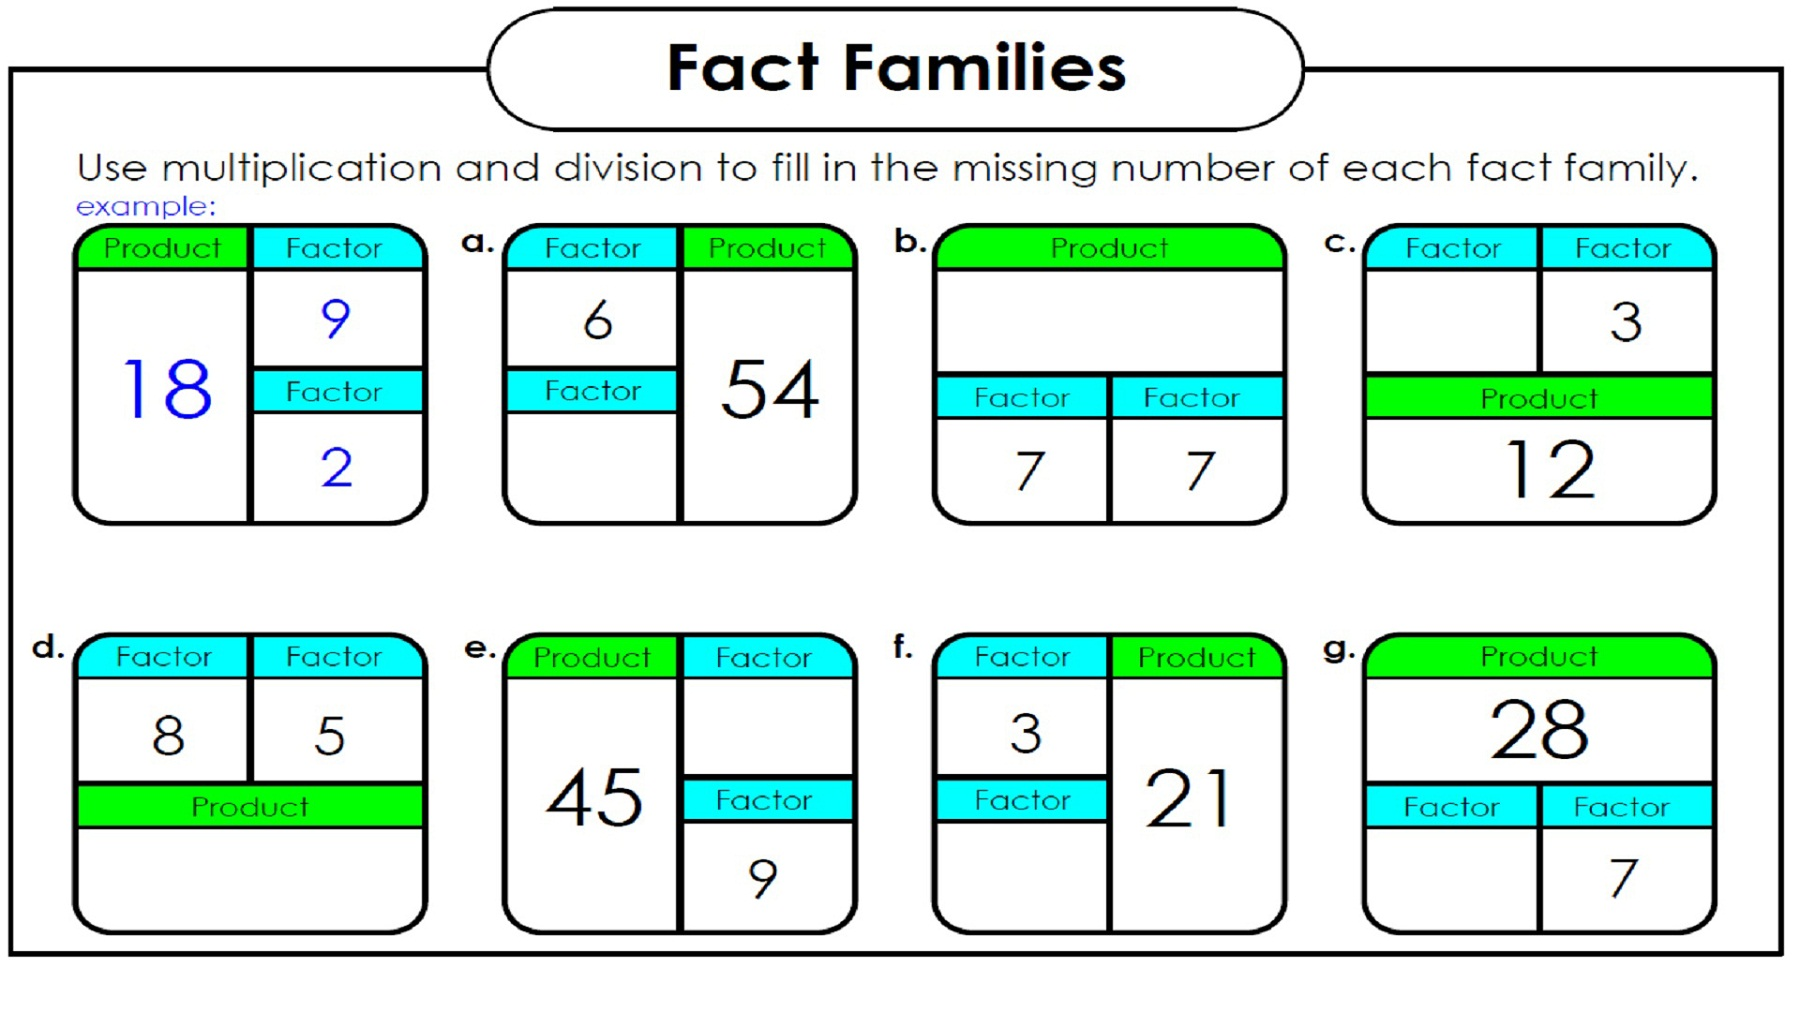 Fact family worksheets multiplication and division cbrp – Fact Family Worksheets Multiplication and Division